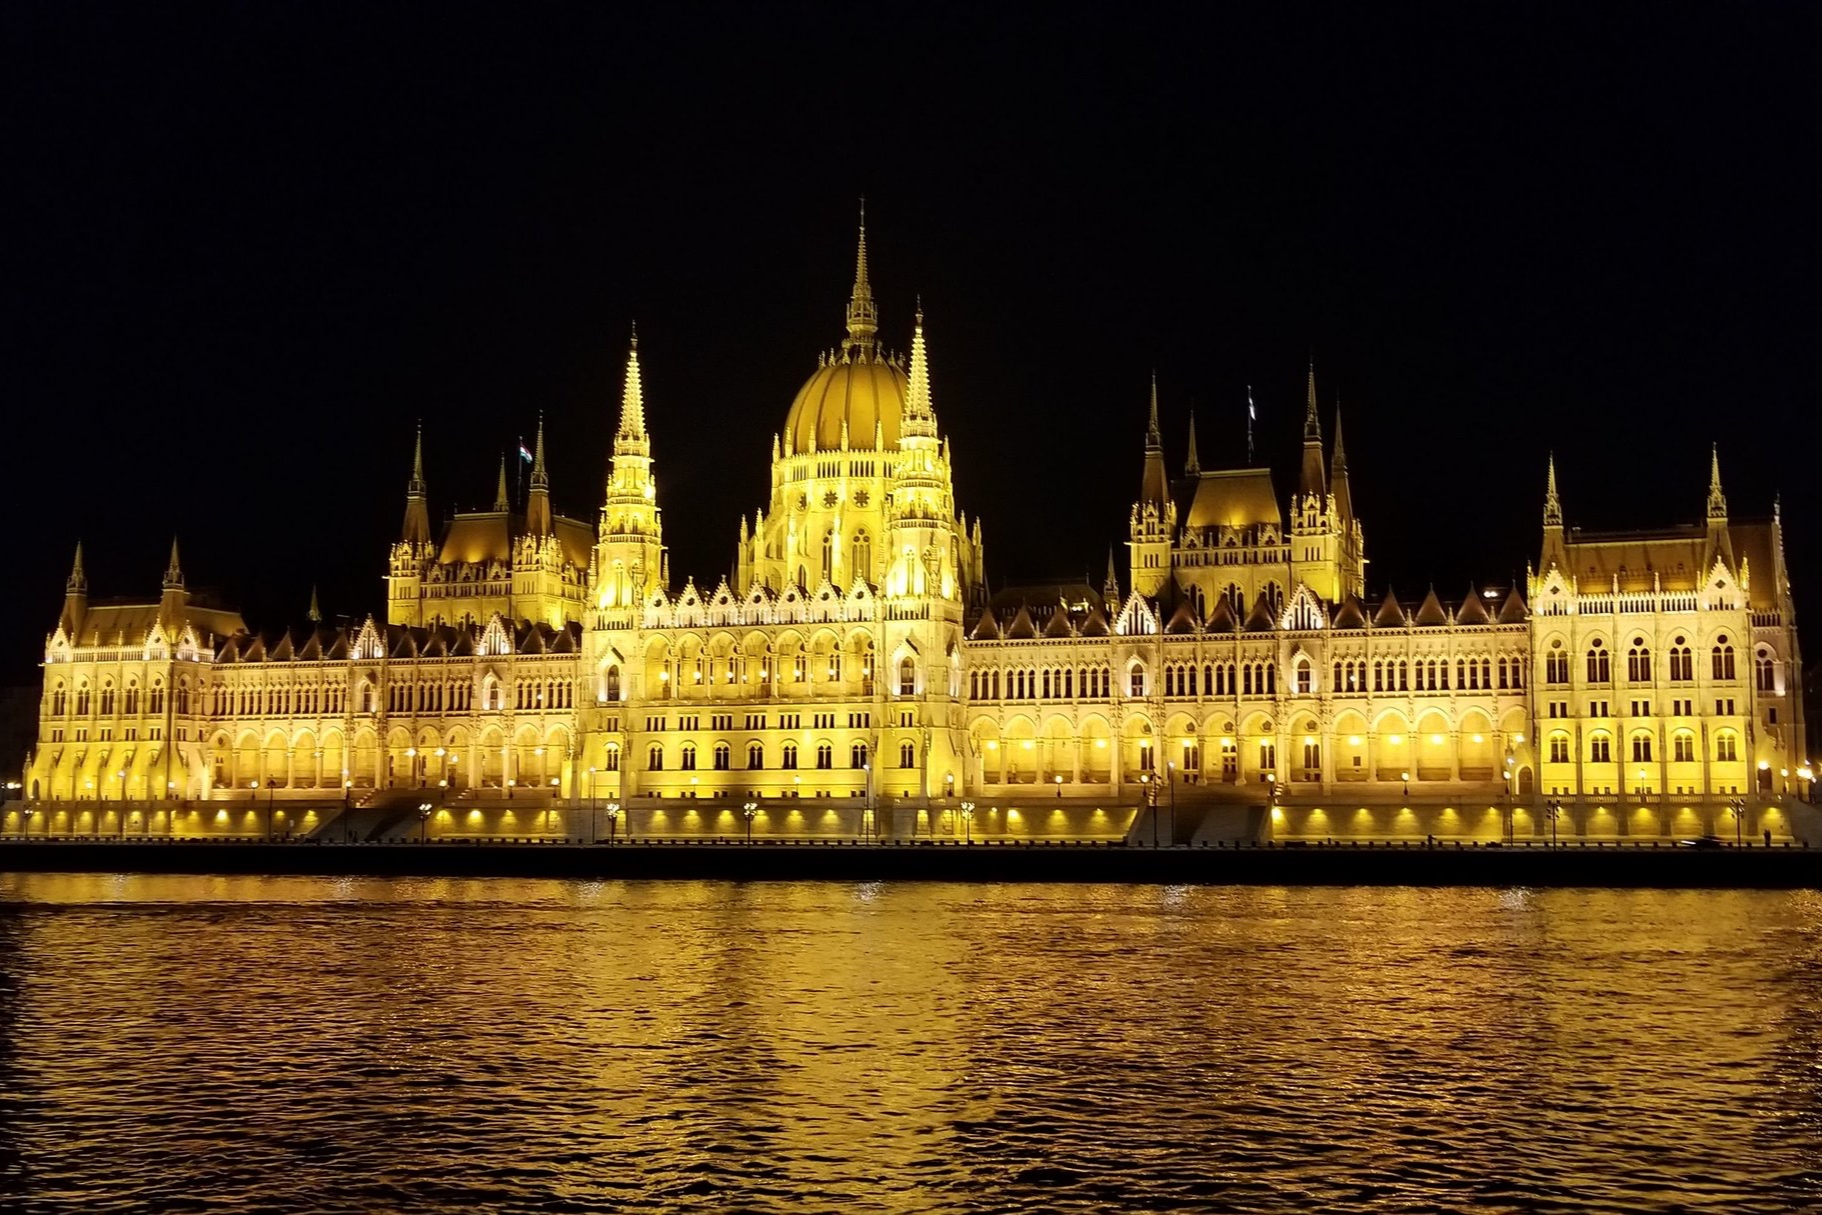 The Danube - Discover the treasures of the Danube on a Crystal River Cruise.